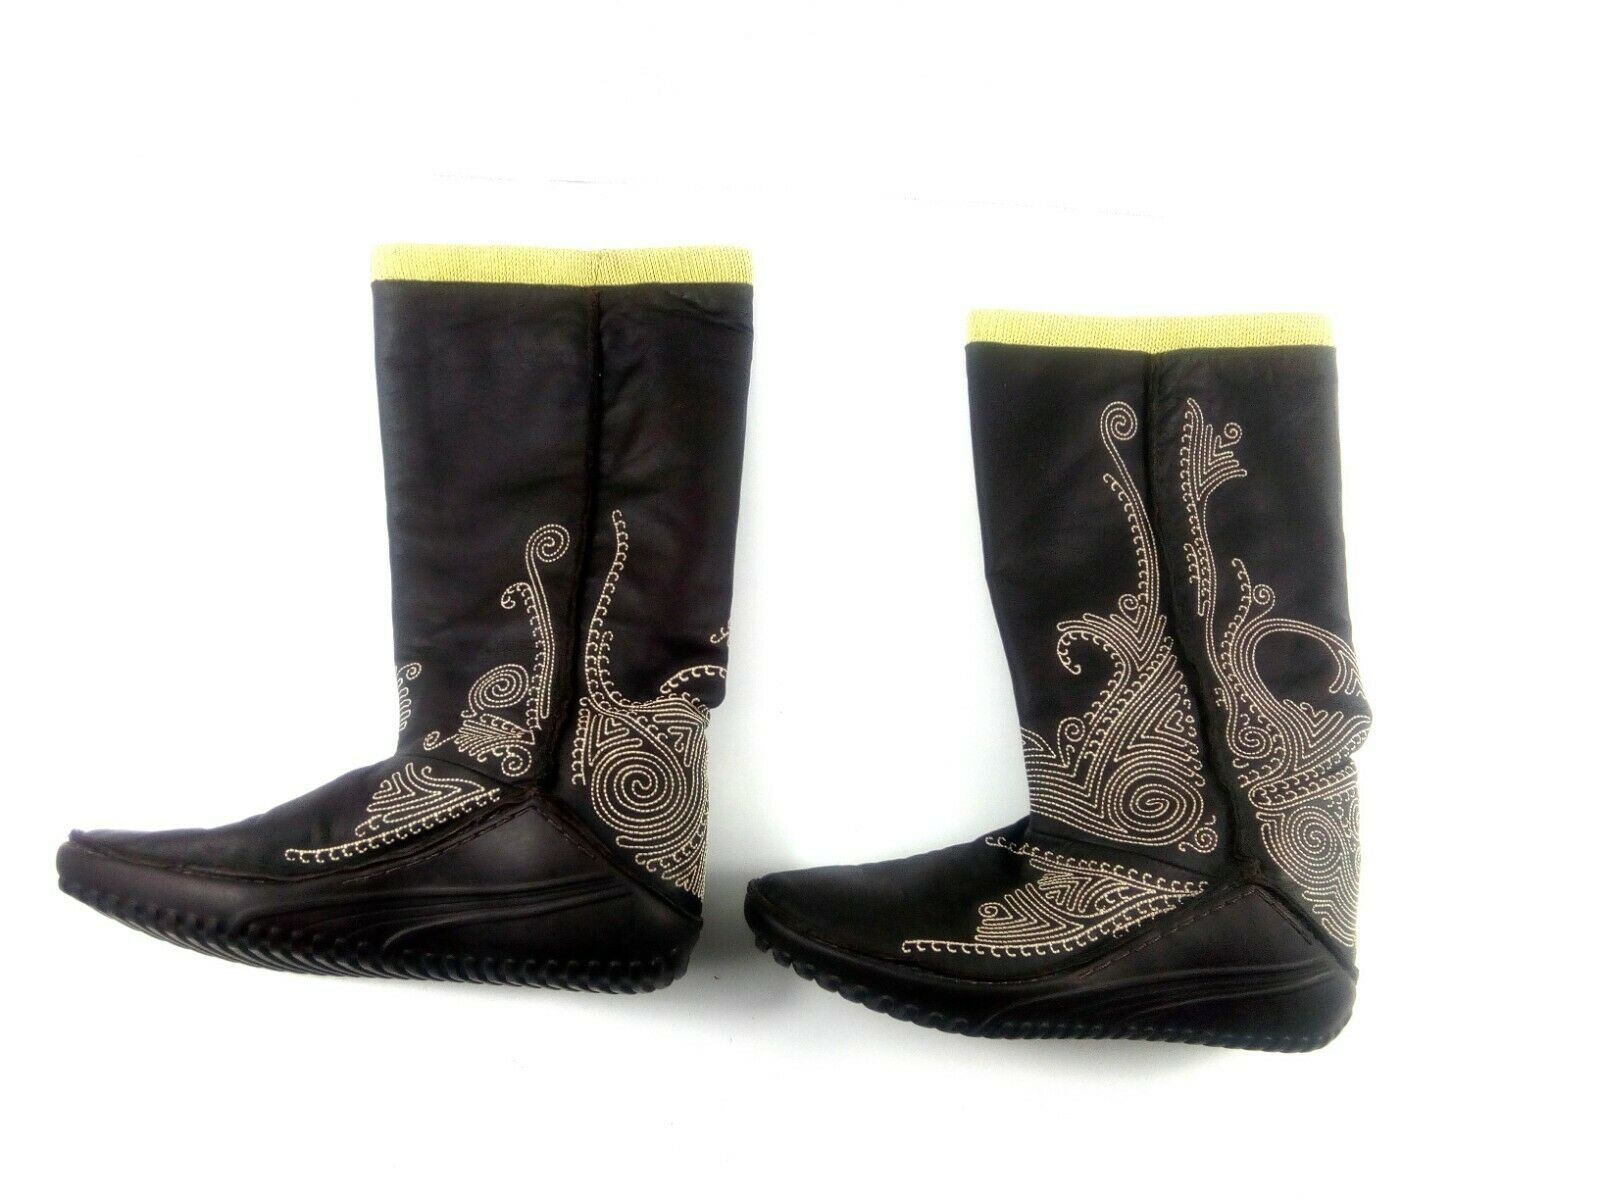 Puma Women's Boots Monsoon Tall Leather Embroidered Brown/Green Booties 7.5 W